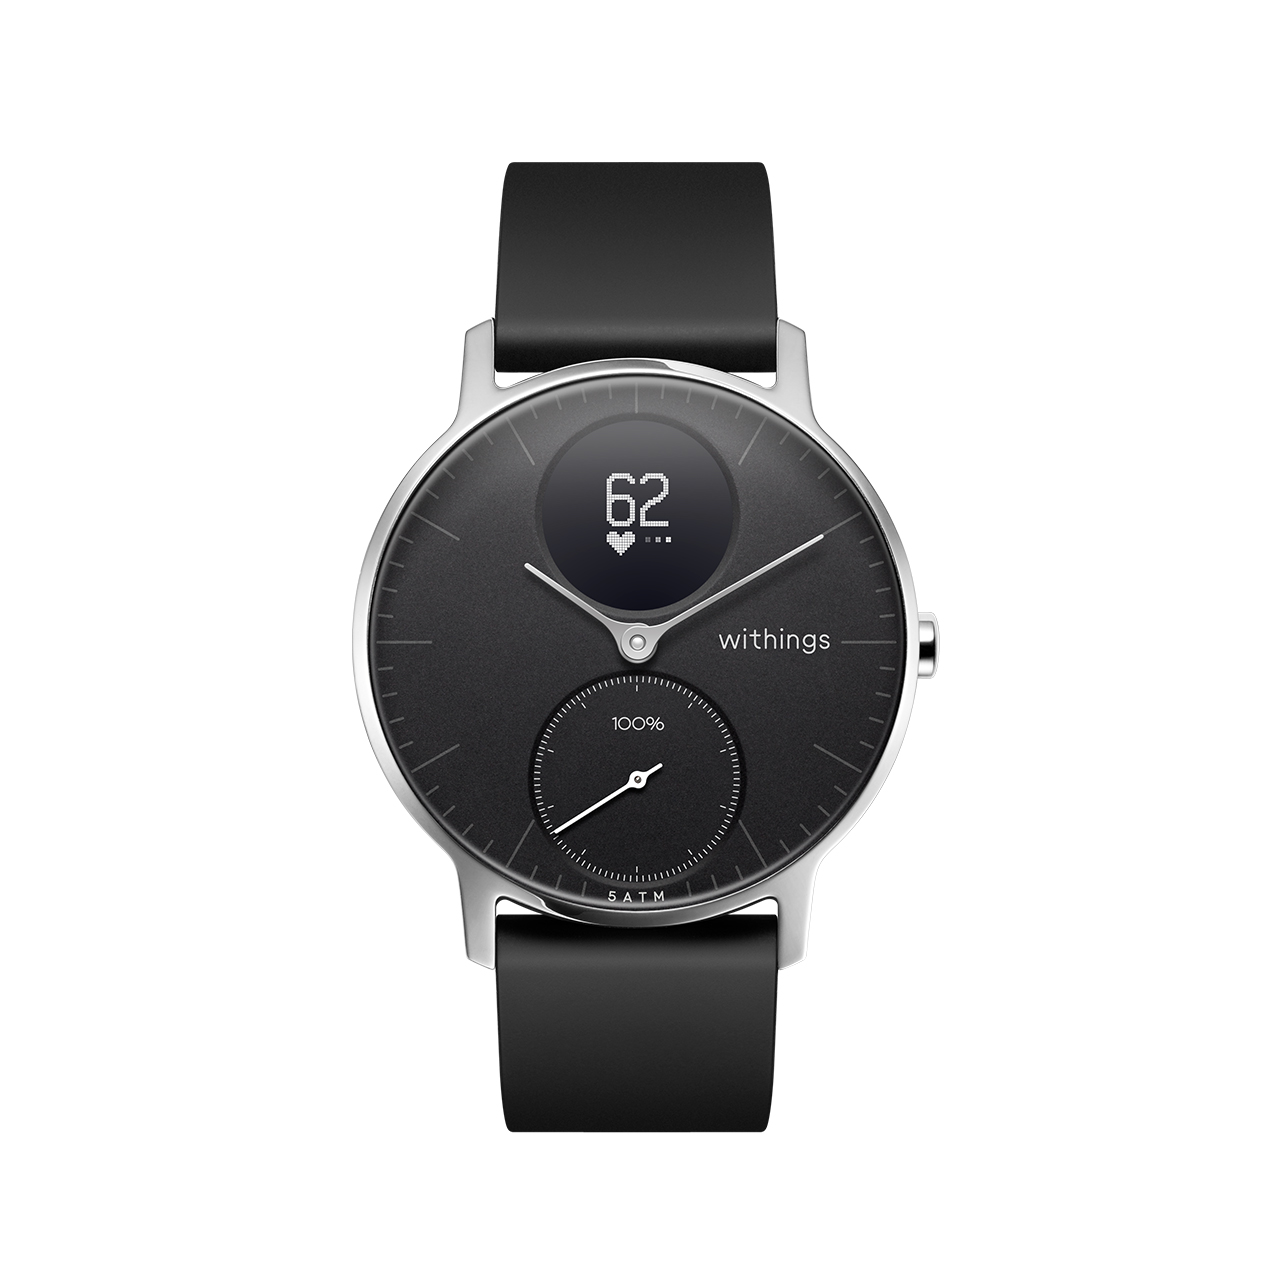 Withings Steel HR (Nokia), 36mm, Black - Hybrid Smartwatch - Heart rate & Smartphone notifications - Withings Official Store